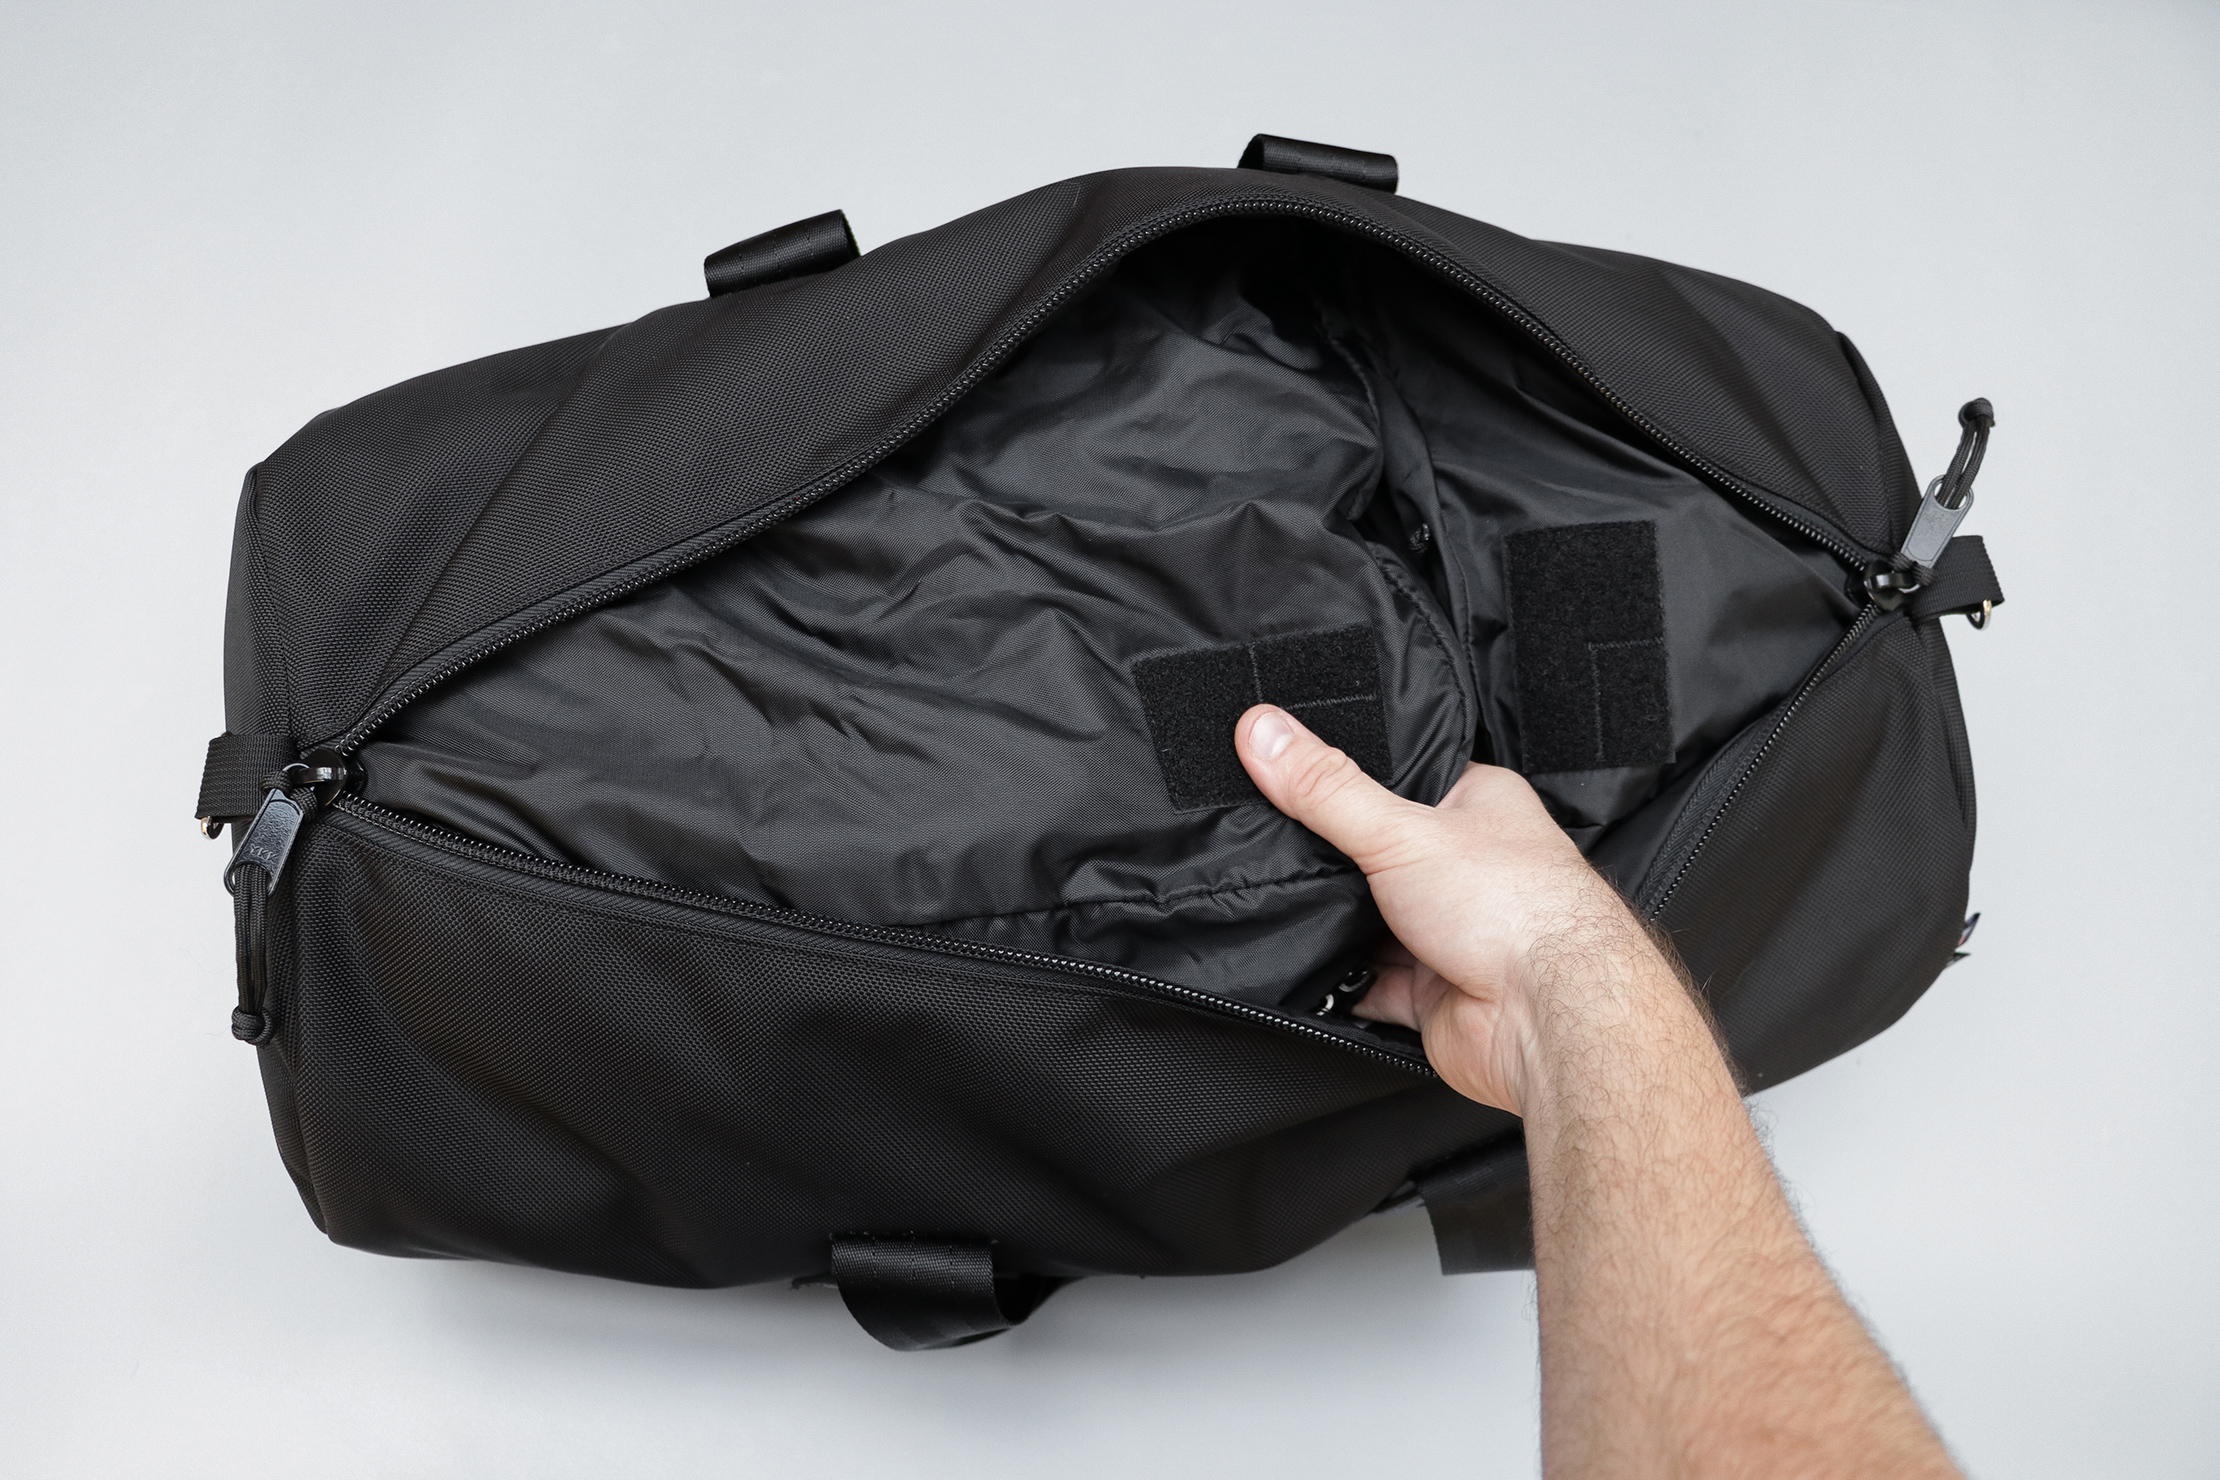 Topo Designs Classic Duffel With Packing Cubes Inside